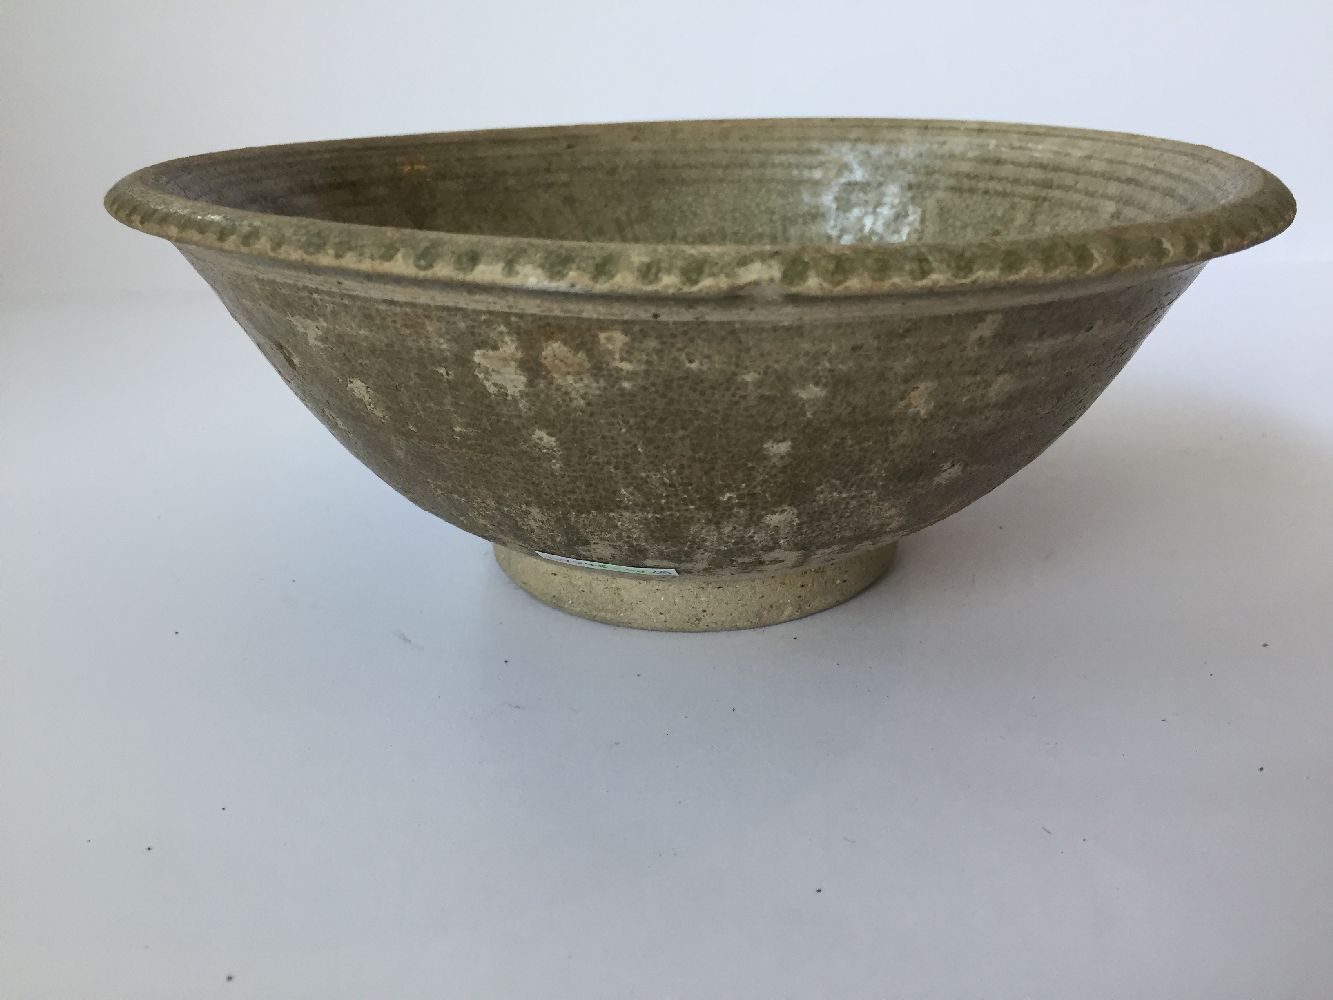 Three Thai Sawankhalok bowls, 15th-16th century, each covered in a celadon glaze, two with fluted - Image 2 of 27